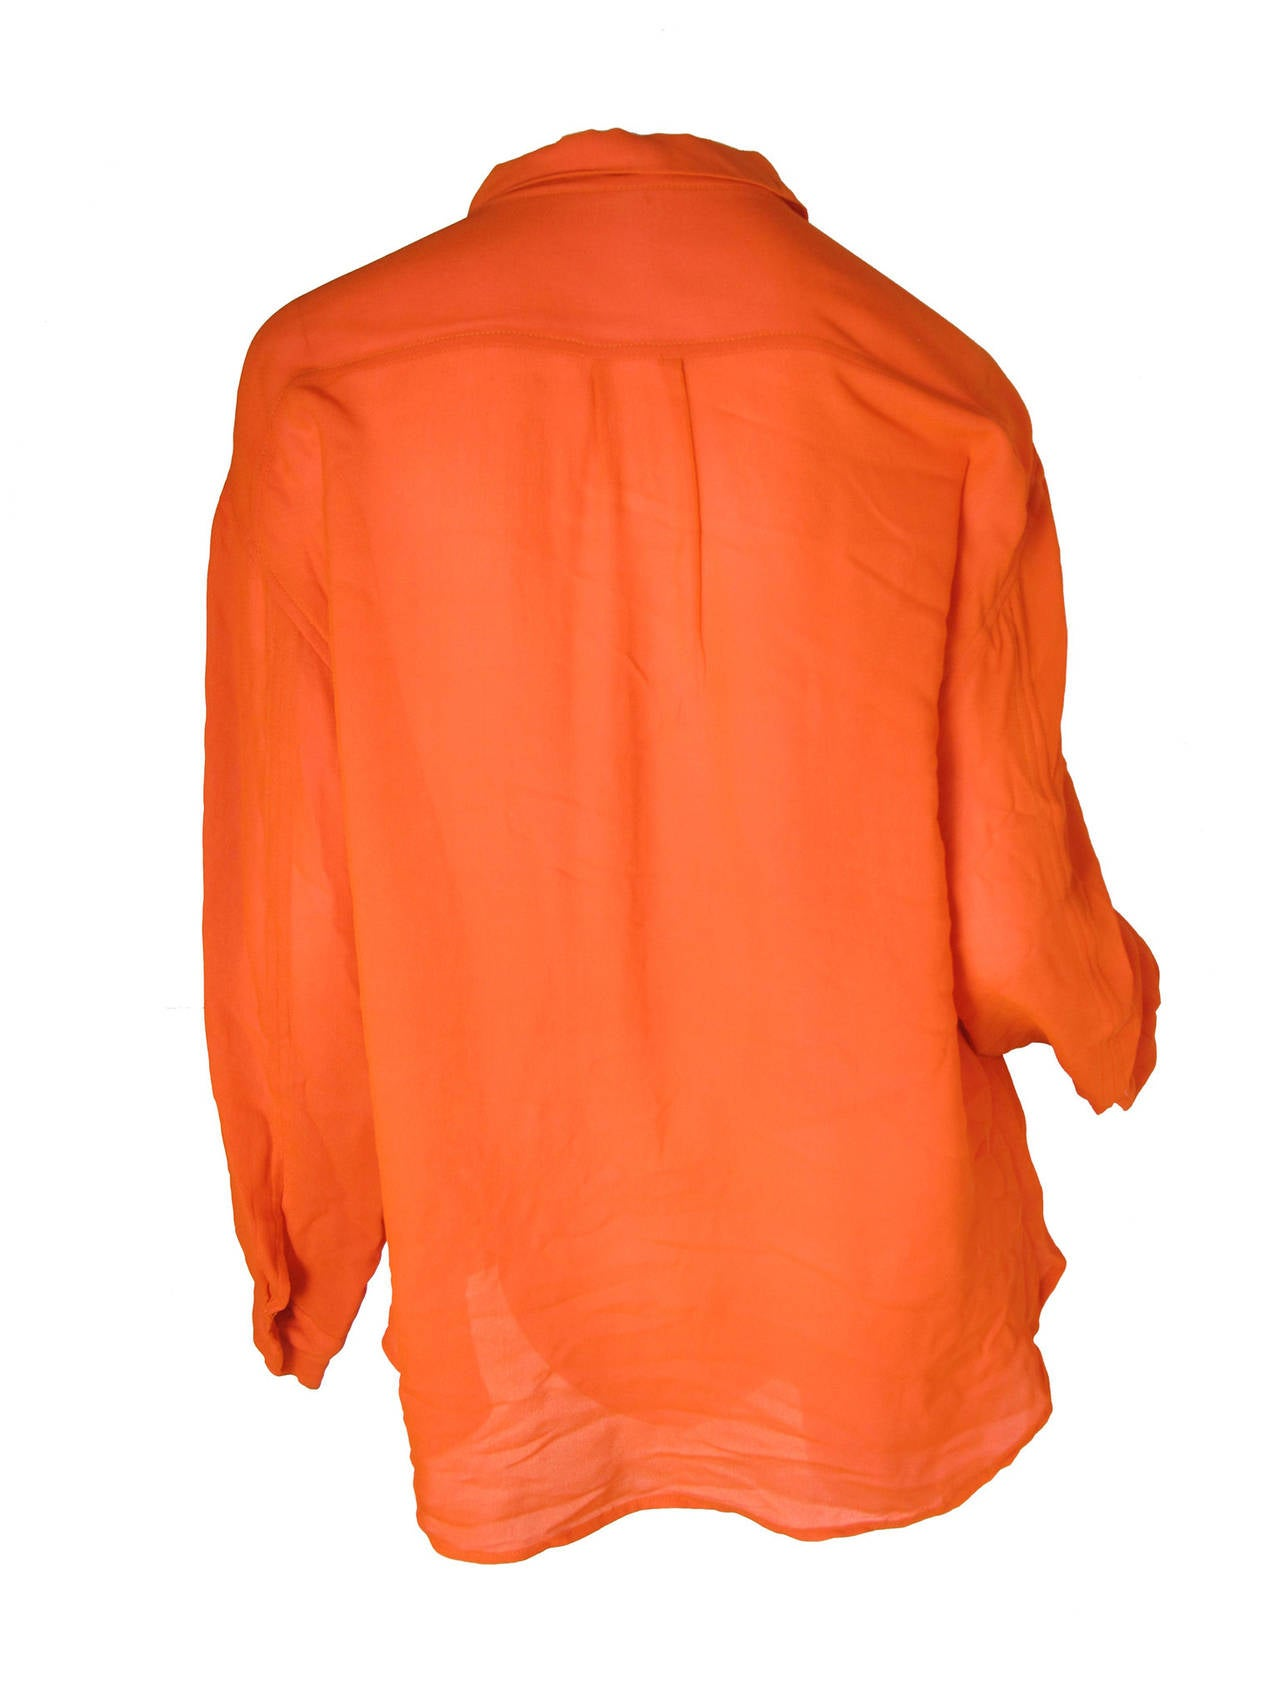 Todd Oldham Orange Silk Blouse with Pink Lining 2